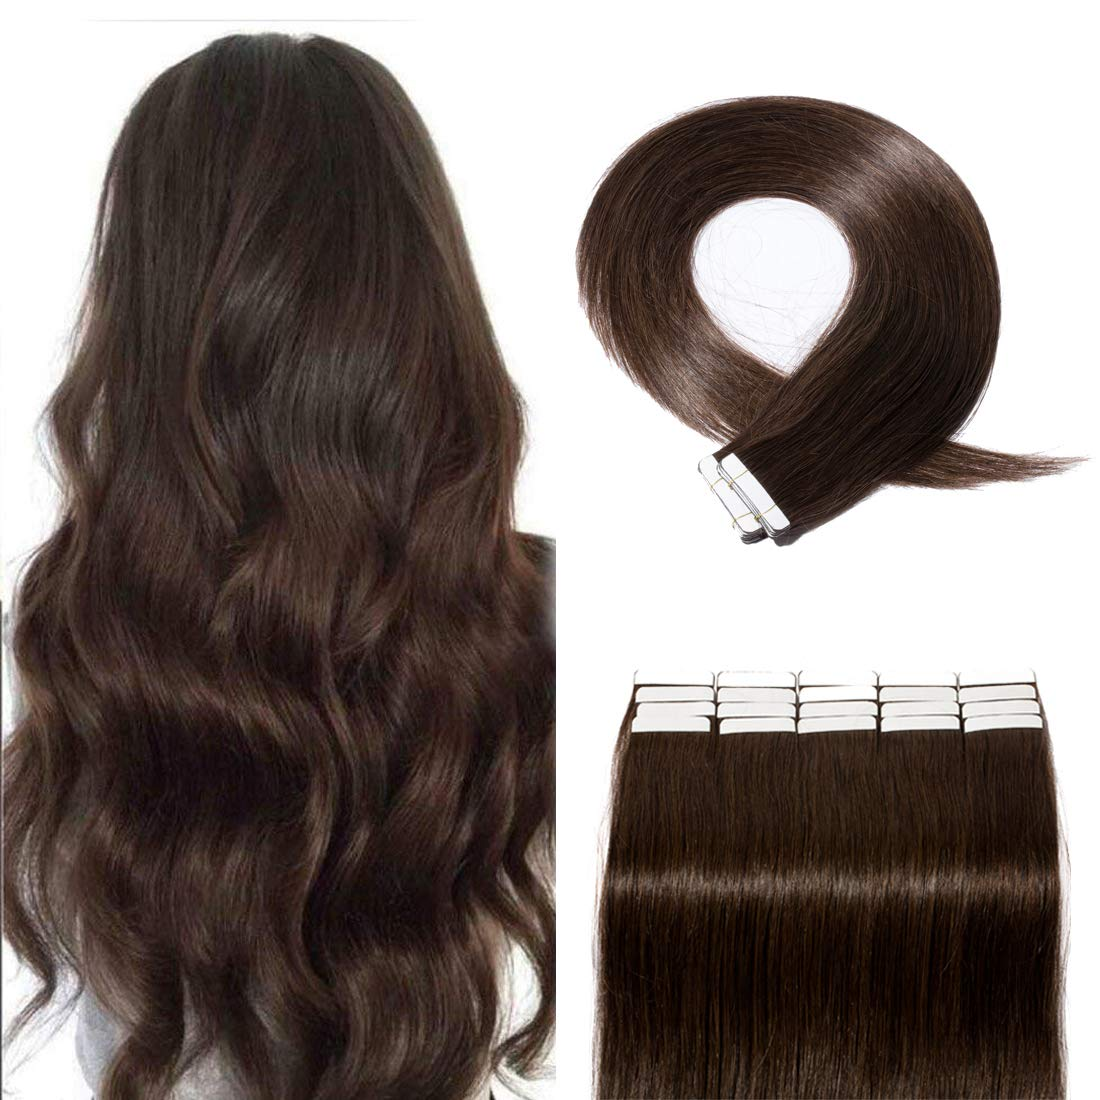 SEGO 40 Pieces Rooted Tape in Hair Extensions Human Hair Seamless Skin Weft 100% Real Remy Invisible Tape Hair Extensions Straight Double Sided 18 inches #02 Dark Brown 100g by SEGO